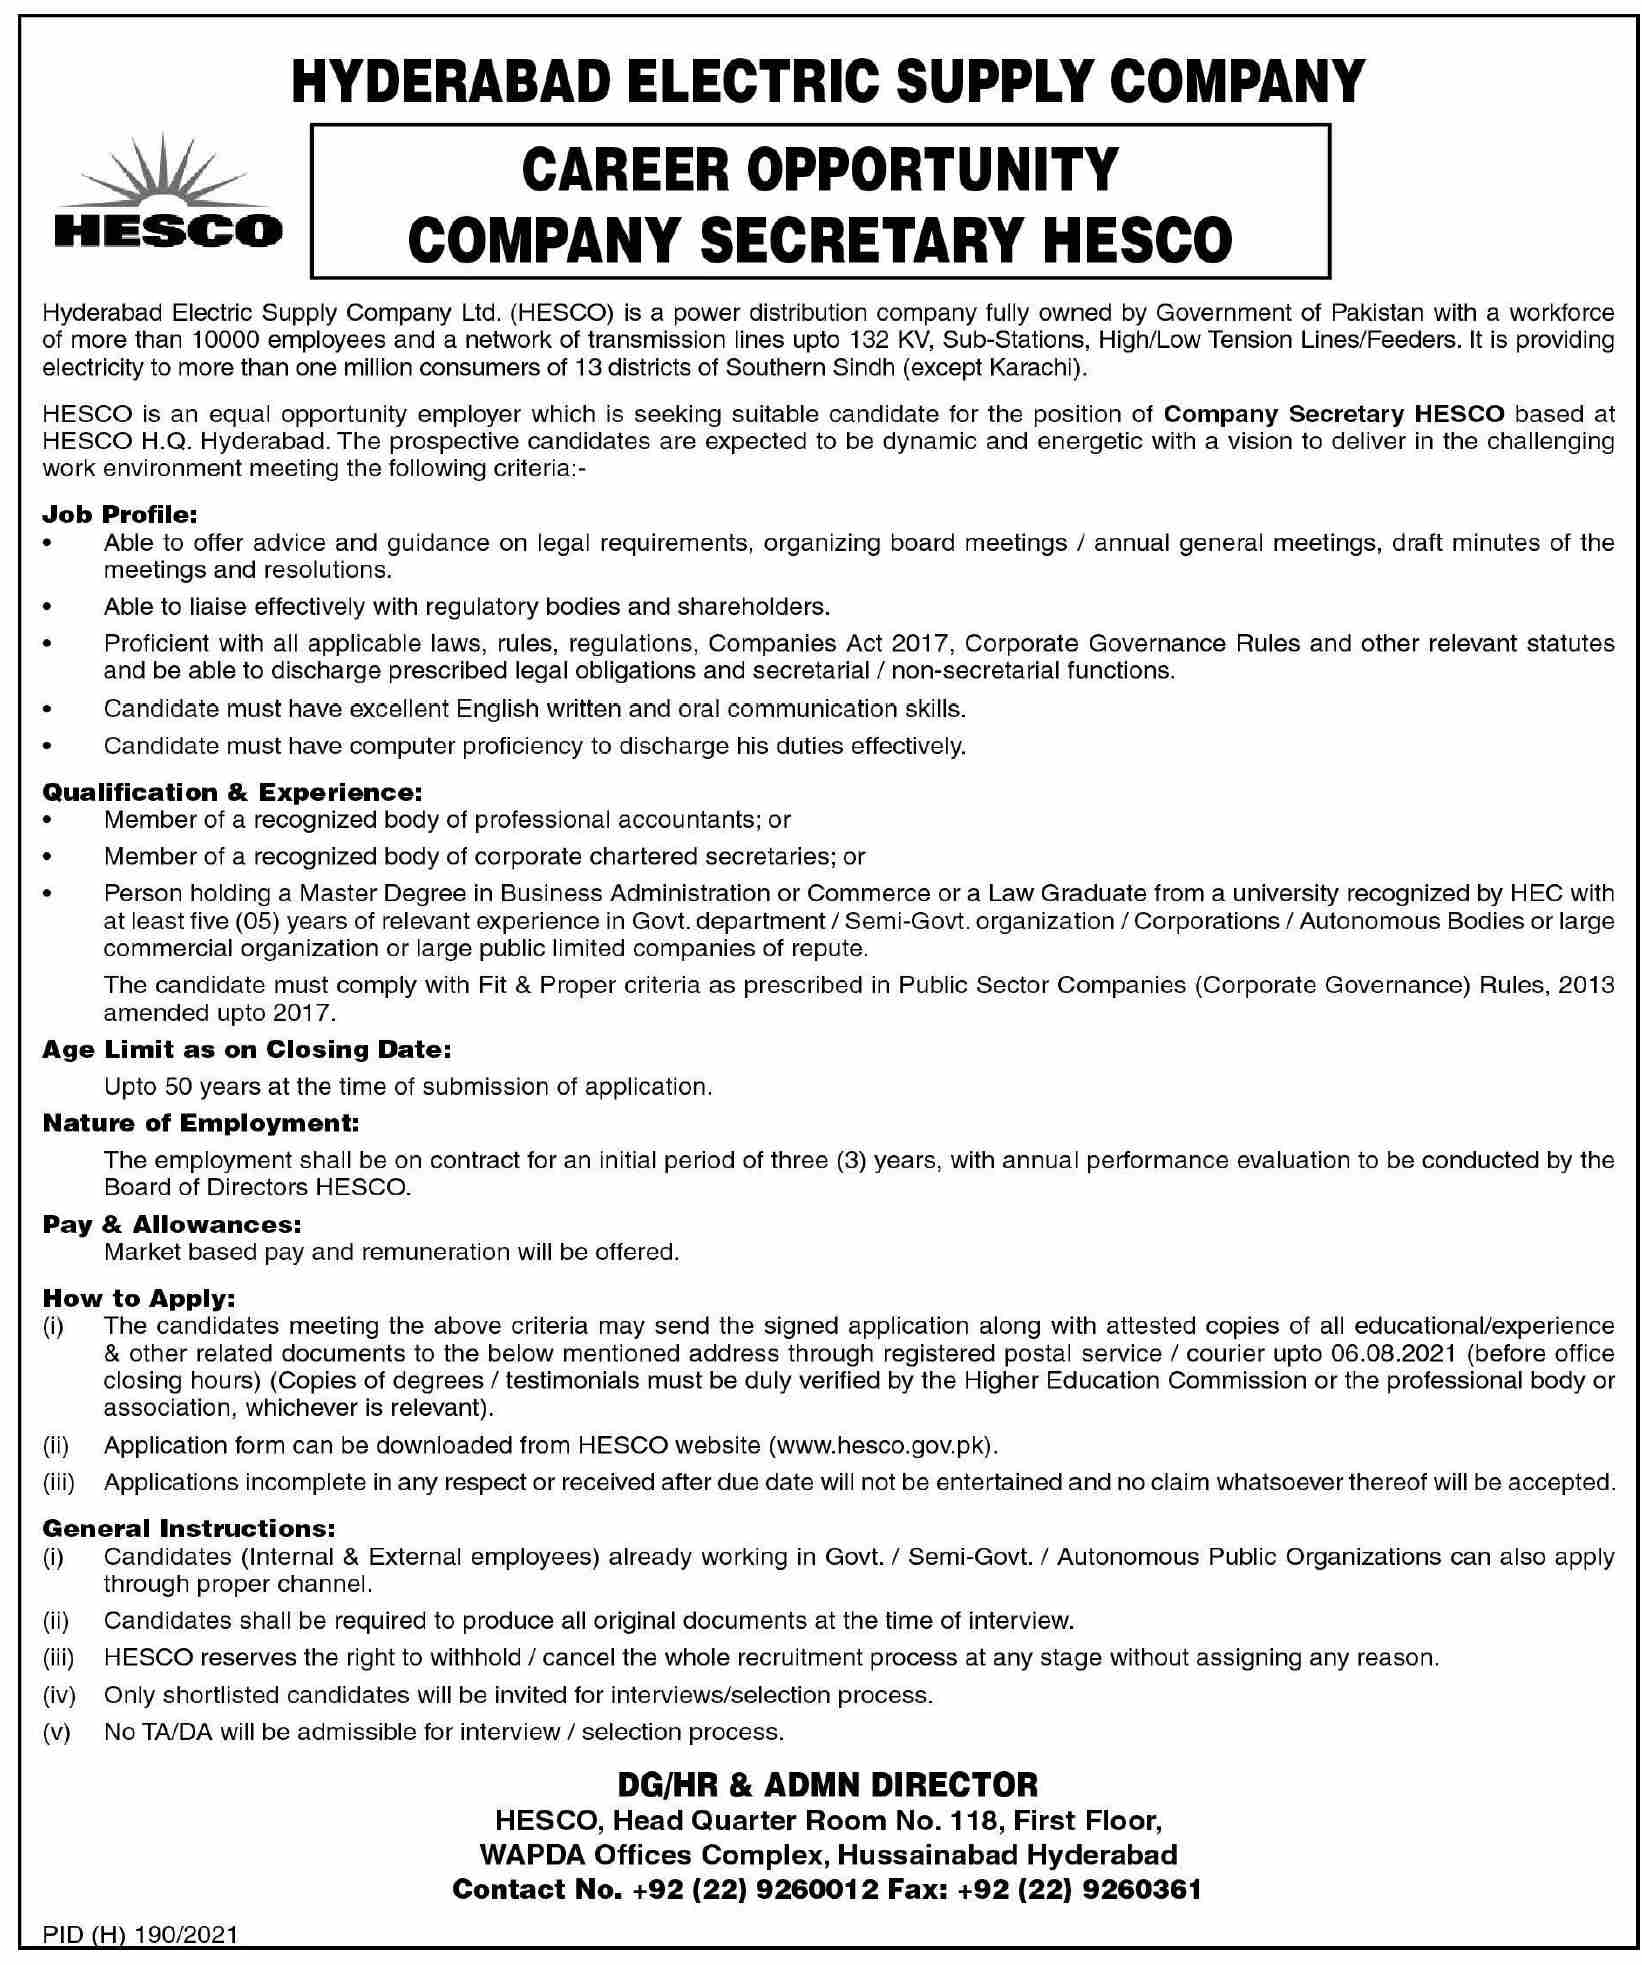 Jobs in Hyderabad Electric Supply Company HESCO July 2021-1